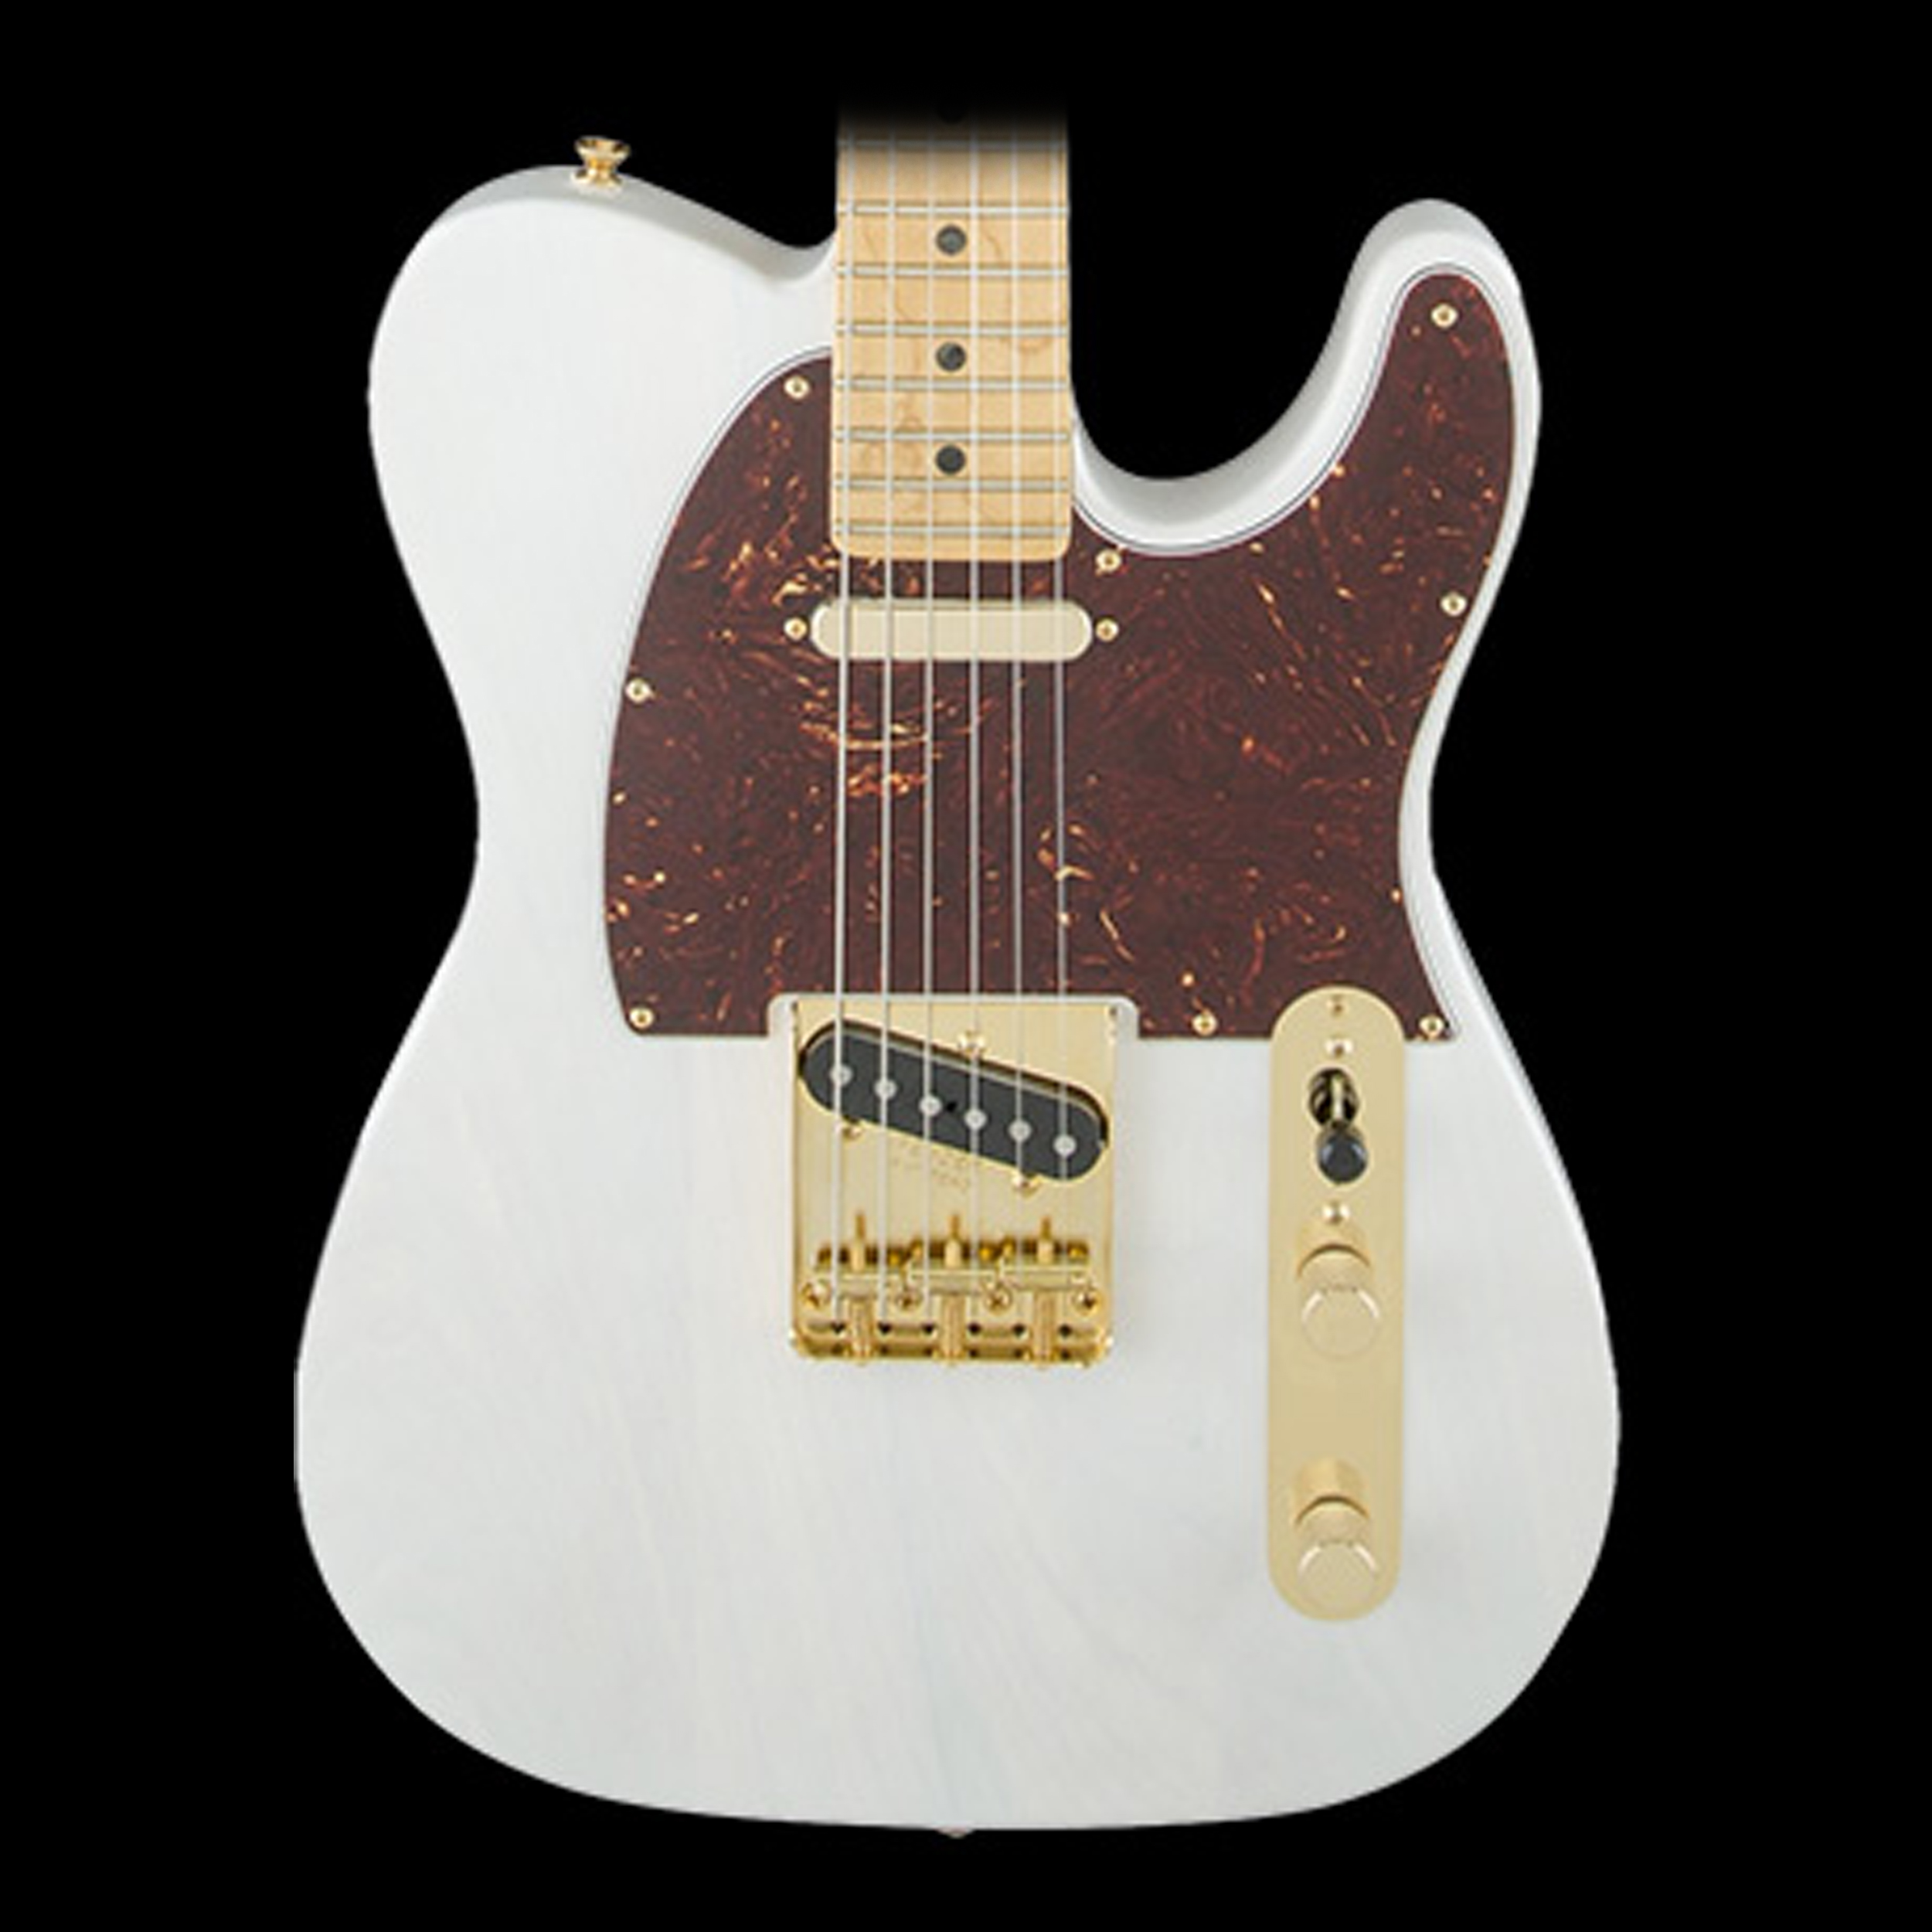 fender limited edition select light ash telecaster white blonde 885978682546 ebay. Black Bedroom Furniture Sets. Home Design Ideas